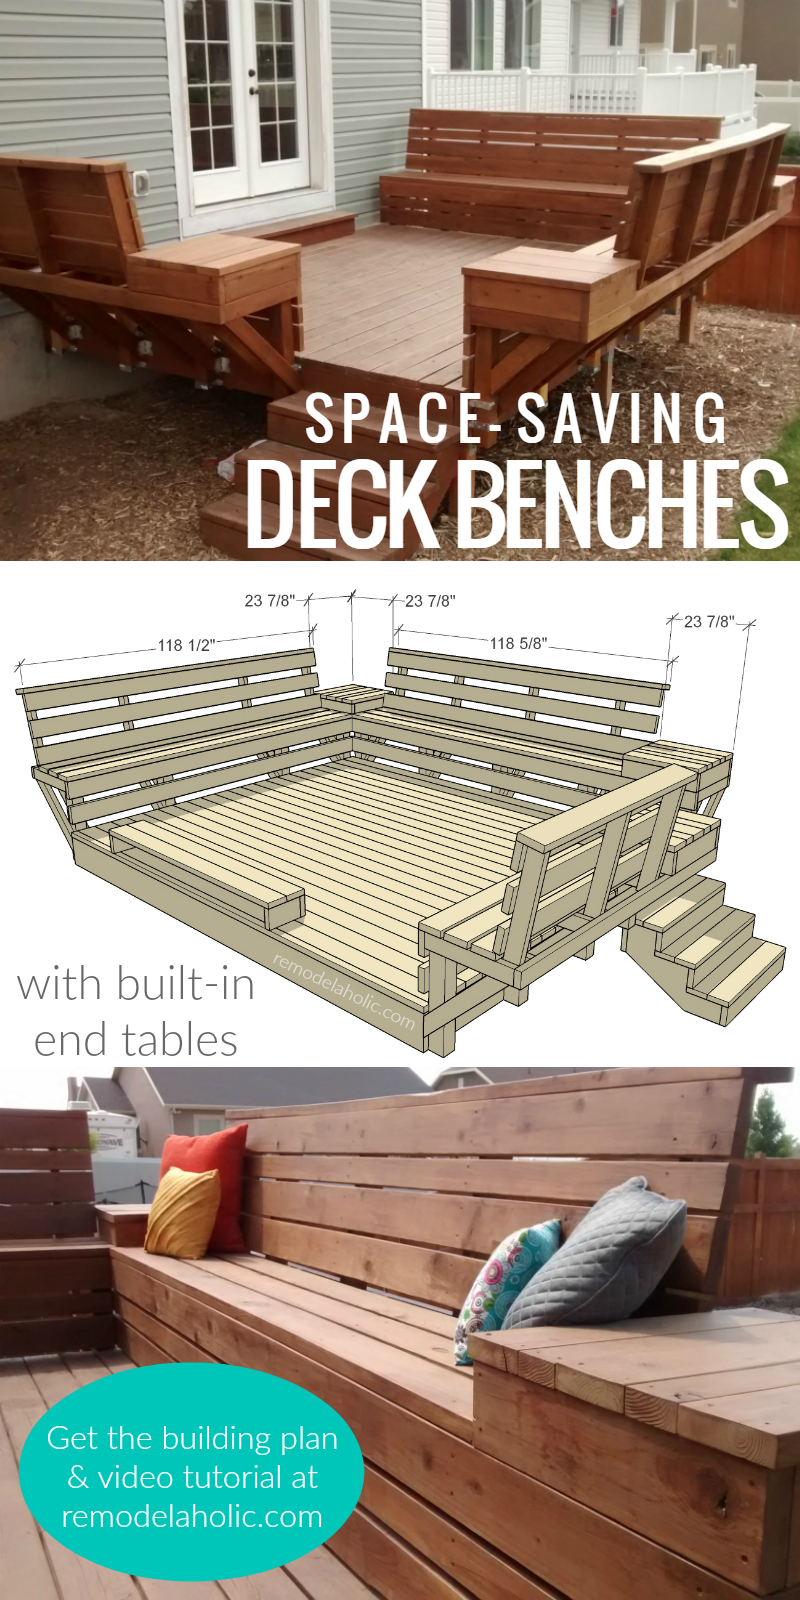 Remodelaholic How To Build Space Saving Deck Benches For